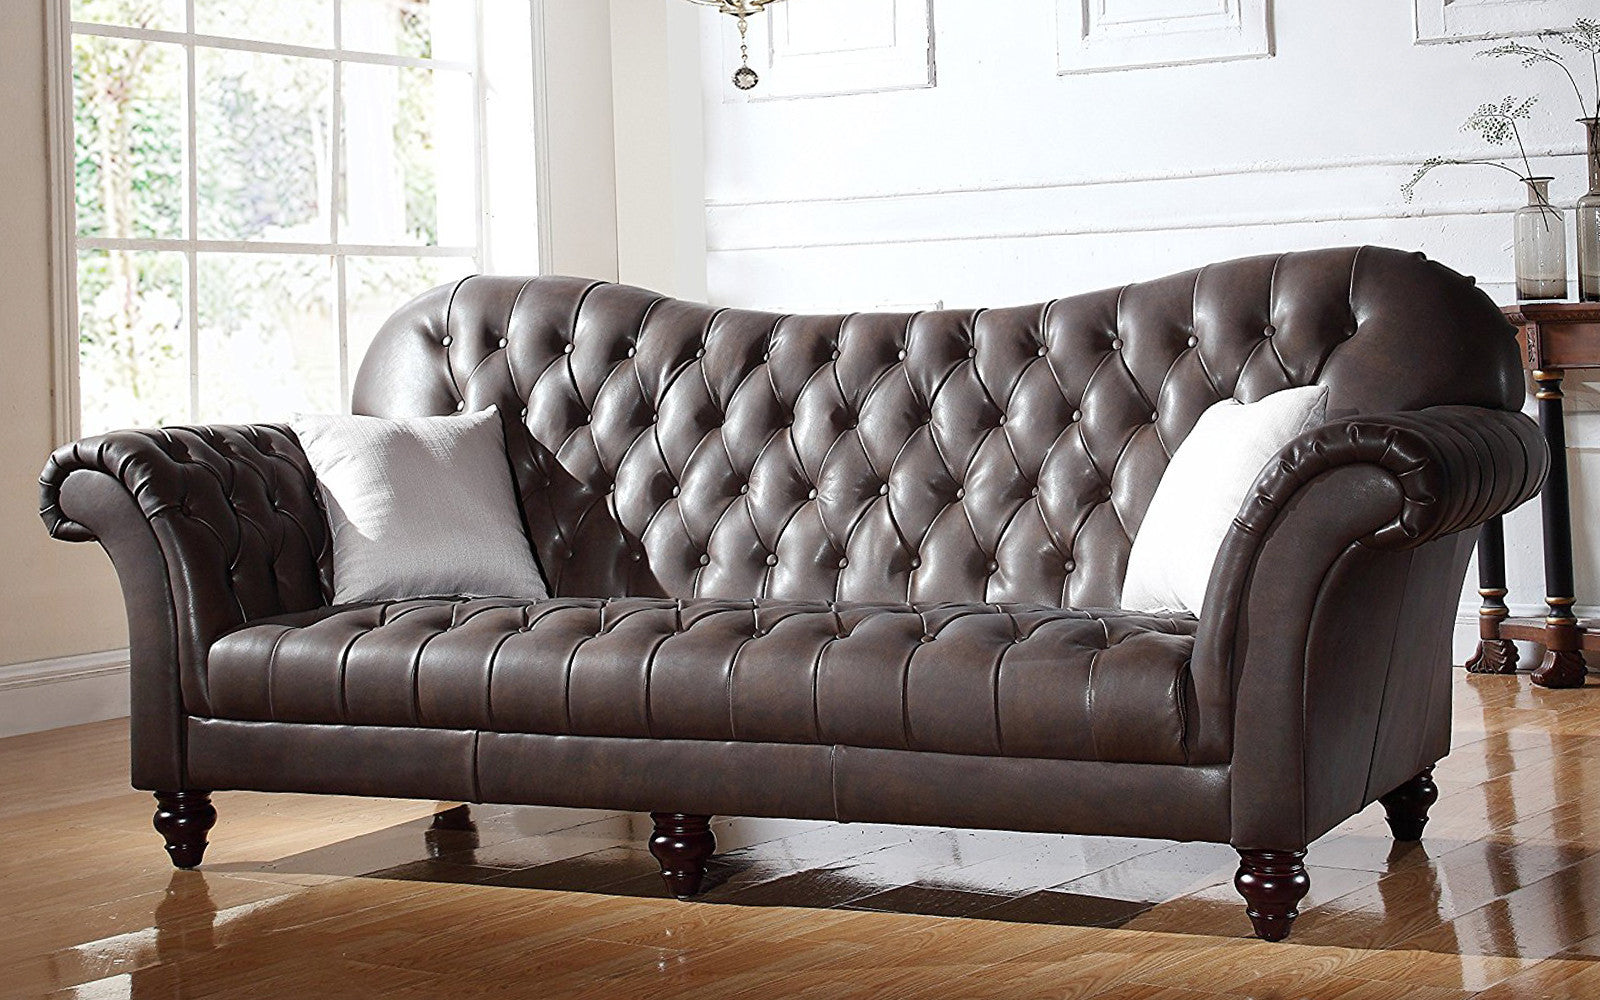 Italian Leather Sofa Image